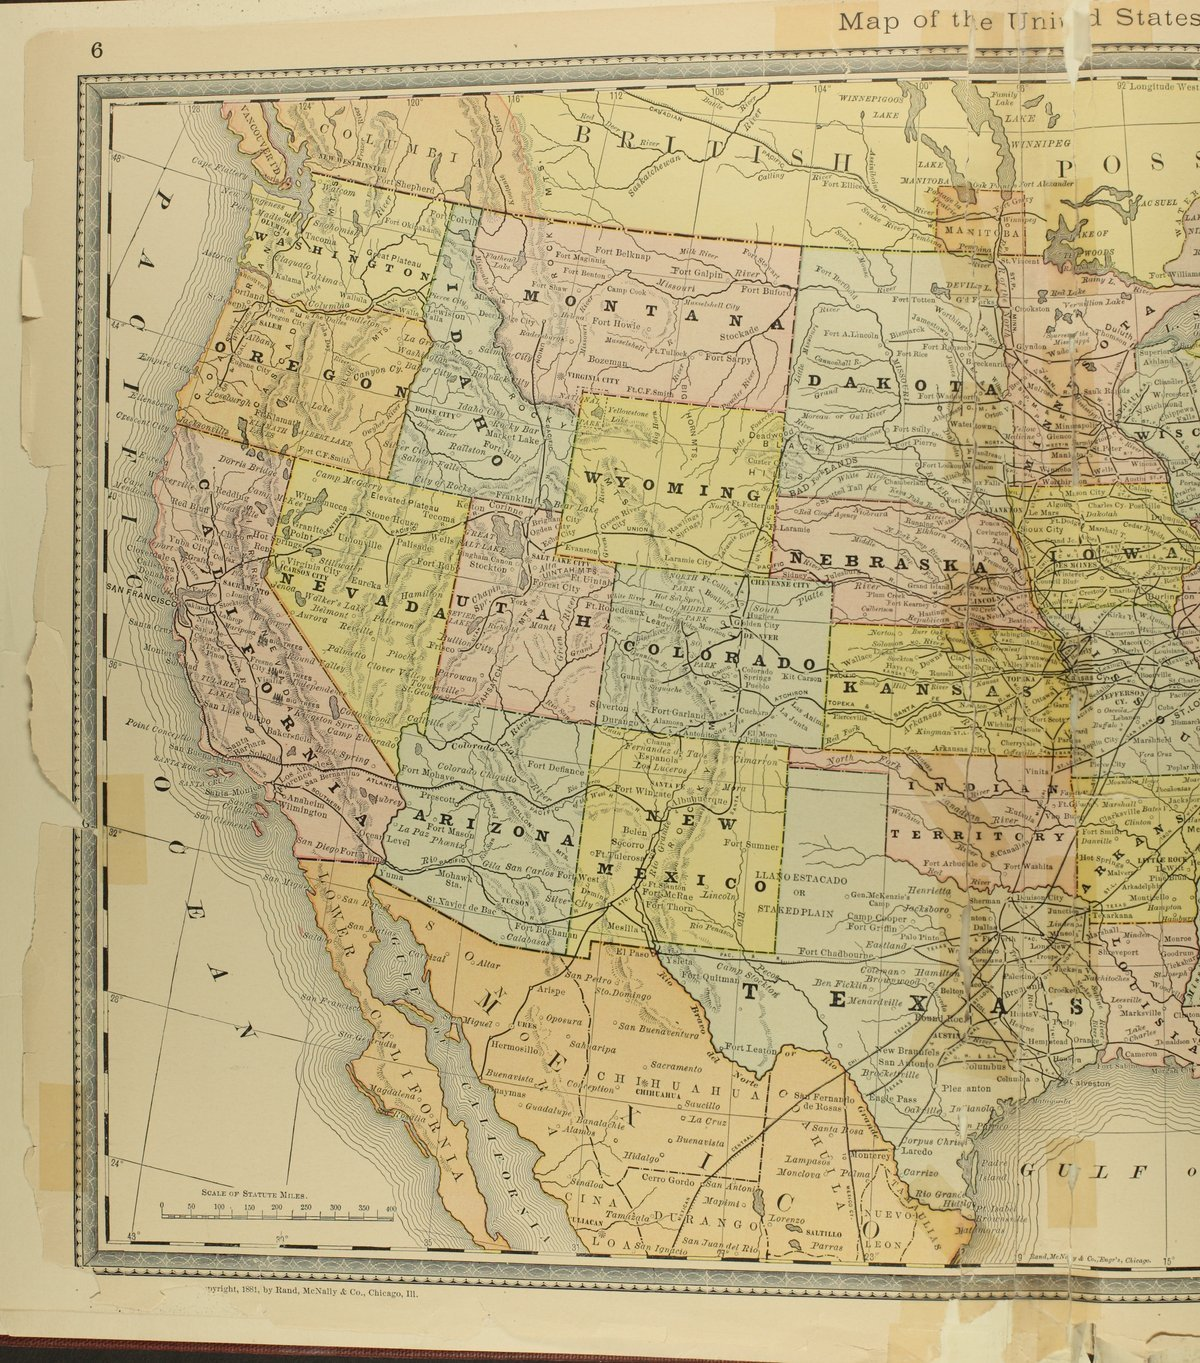 Historical plat book of Doniphan County, Kansas - Map of the United States